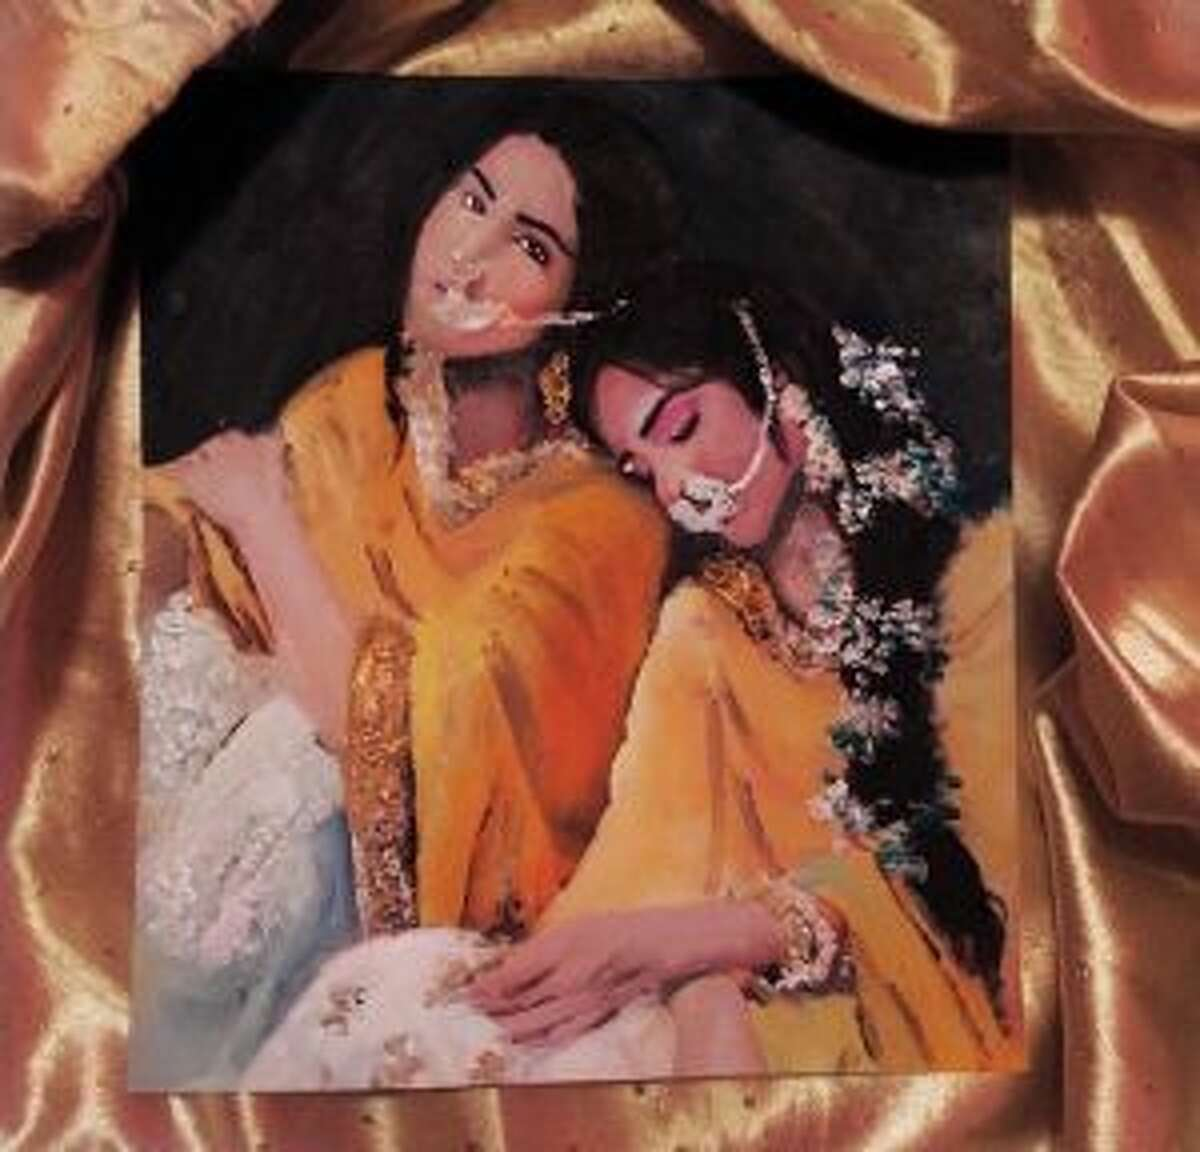 Bhadrangi Soni's paintings feature South Asian survivors of sexual assault.